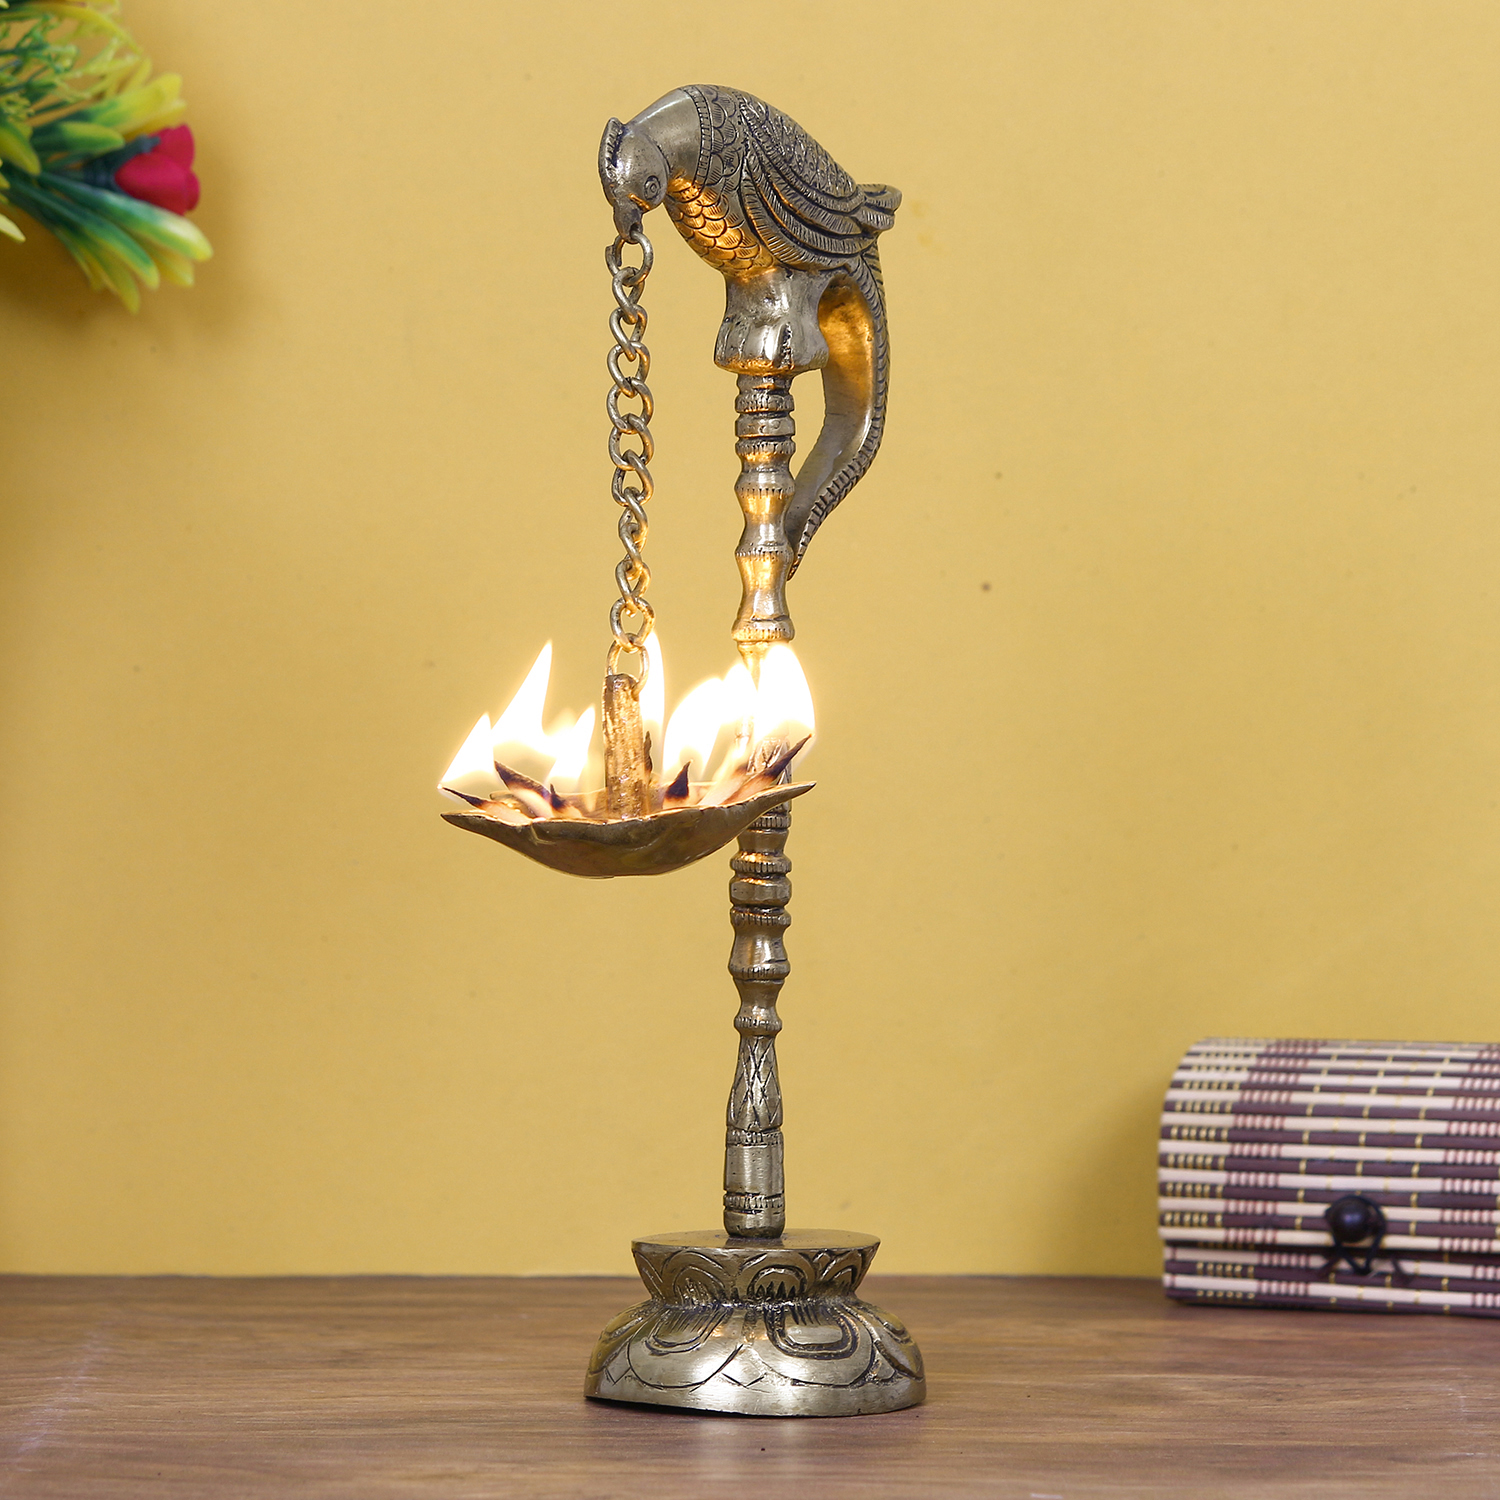 Decorative Handcrafted Brass Parrot Showpiece Diya for 7 wicks with Stand Indian Home Decor